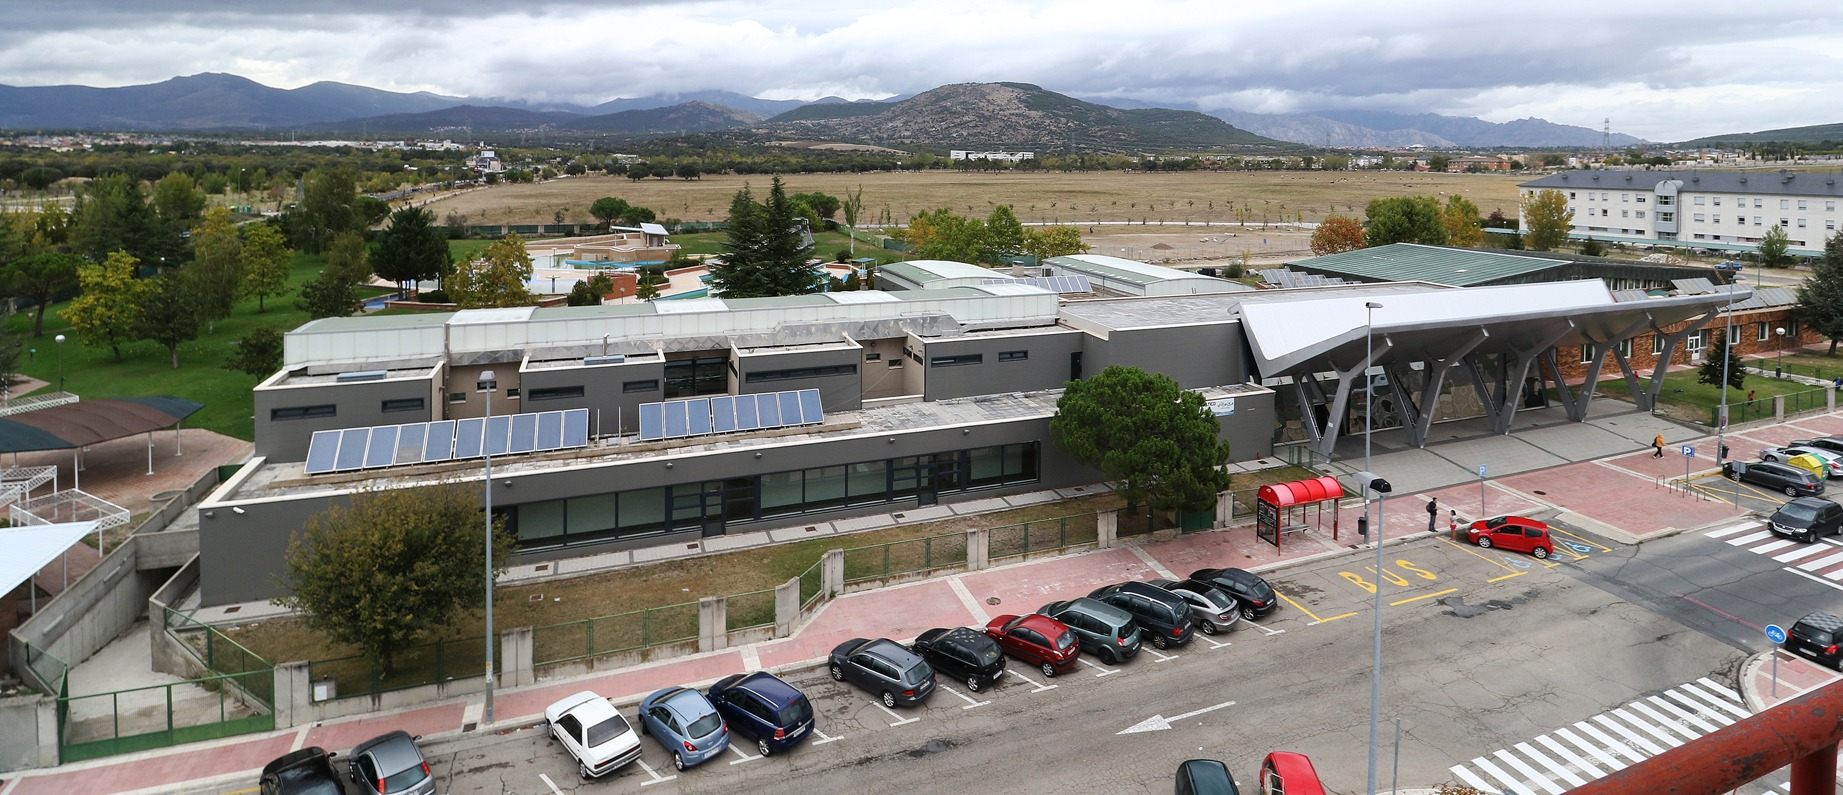 El spa municipal de collado villalba cerrado for Piscina municipal moralzarzal